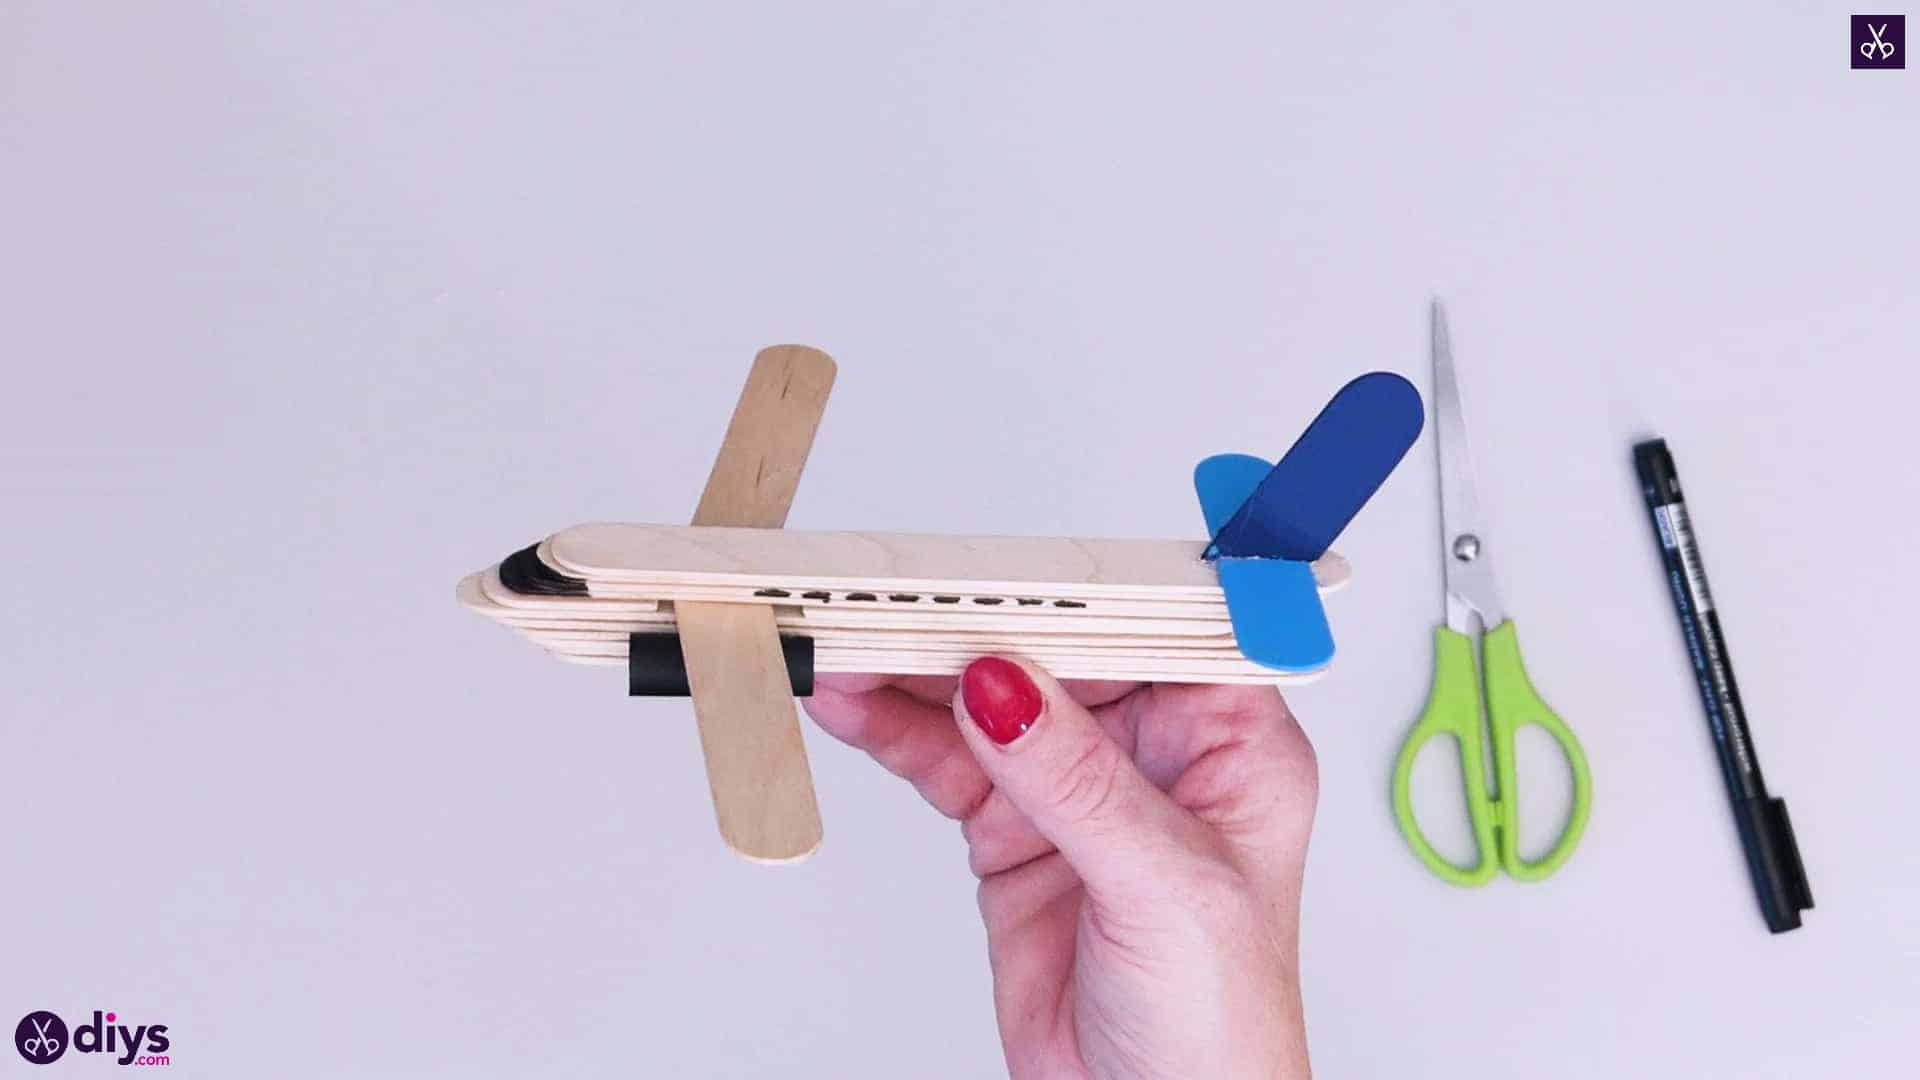 Popsicle stick airplane step 8f